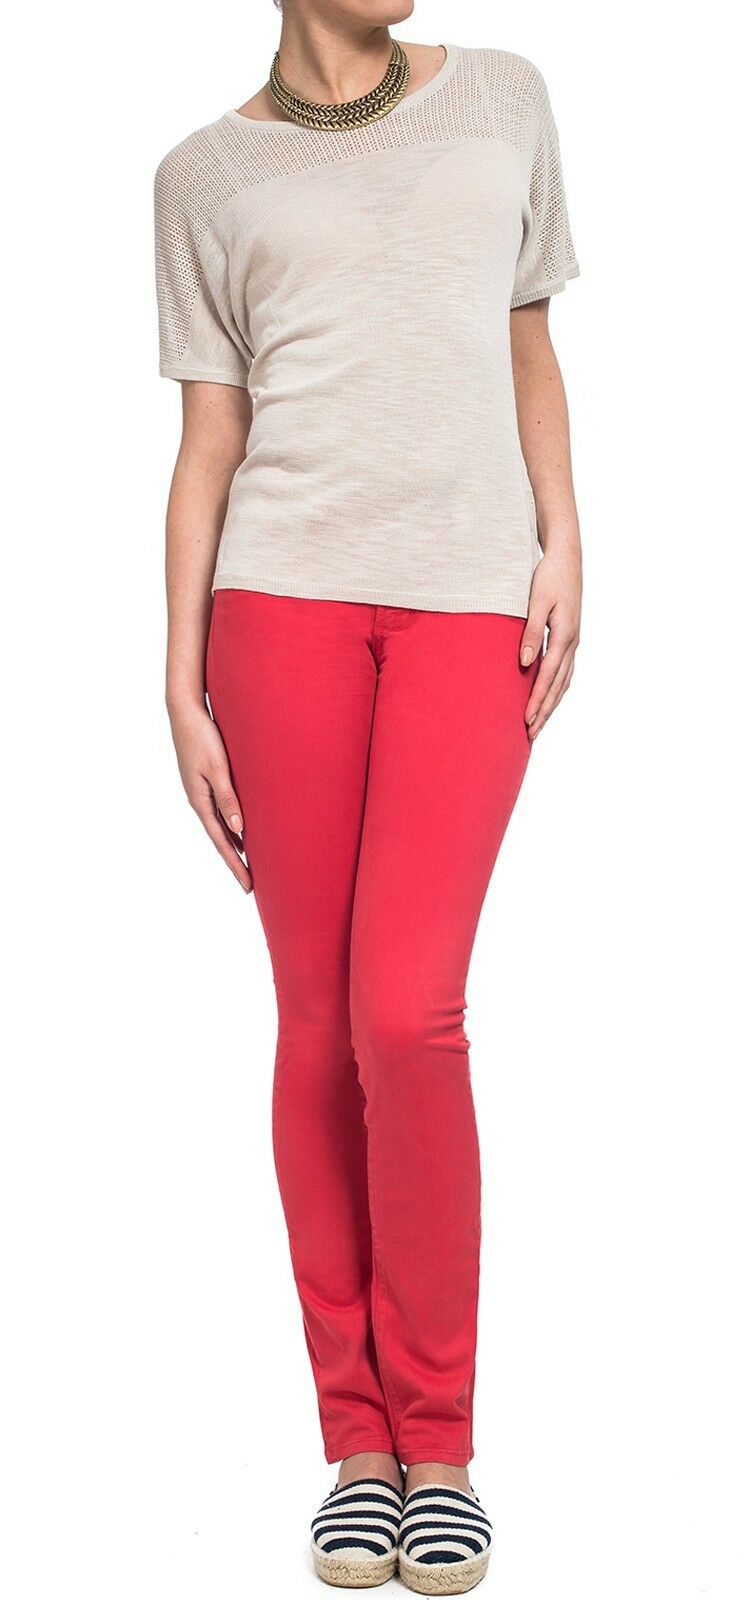 BNWT NYDJ SKINNY RED PLUS SIZE LADIES LUXURY JEANS MADE IN USA US 24